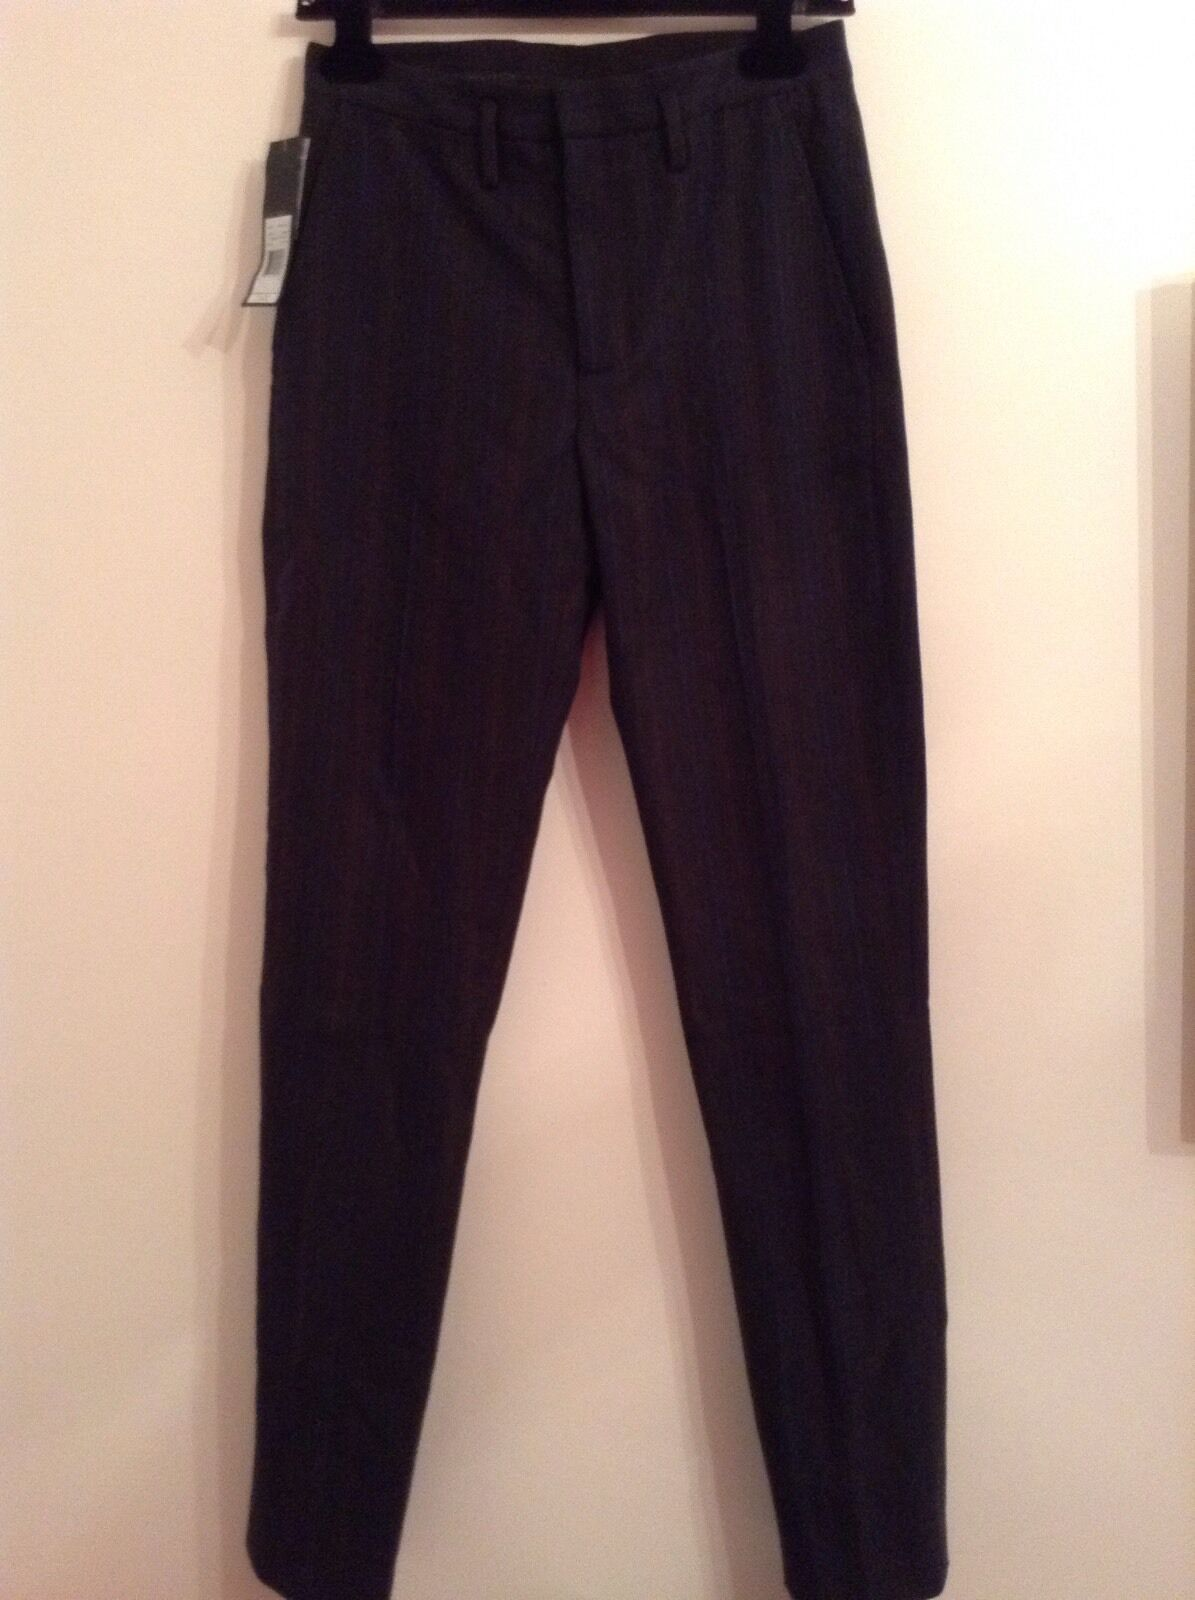 BNWT 100% Auth Marc Jacobs Office Style,Mix Wool Ladies Trousers. 28 34 RRP  328